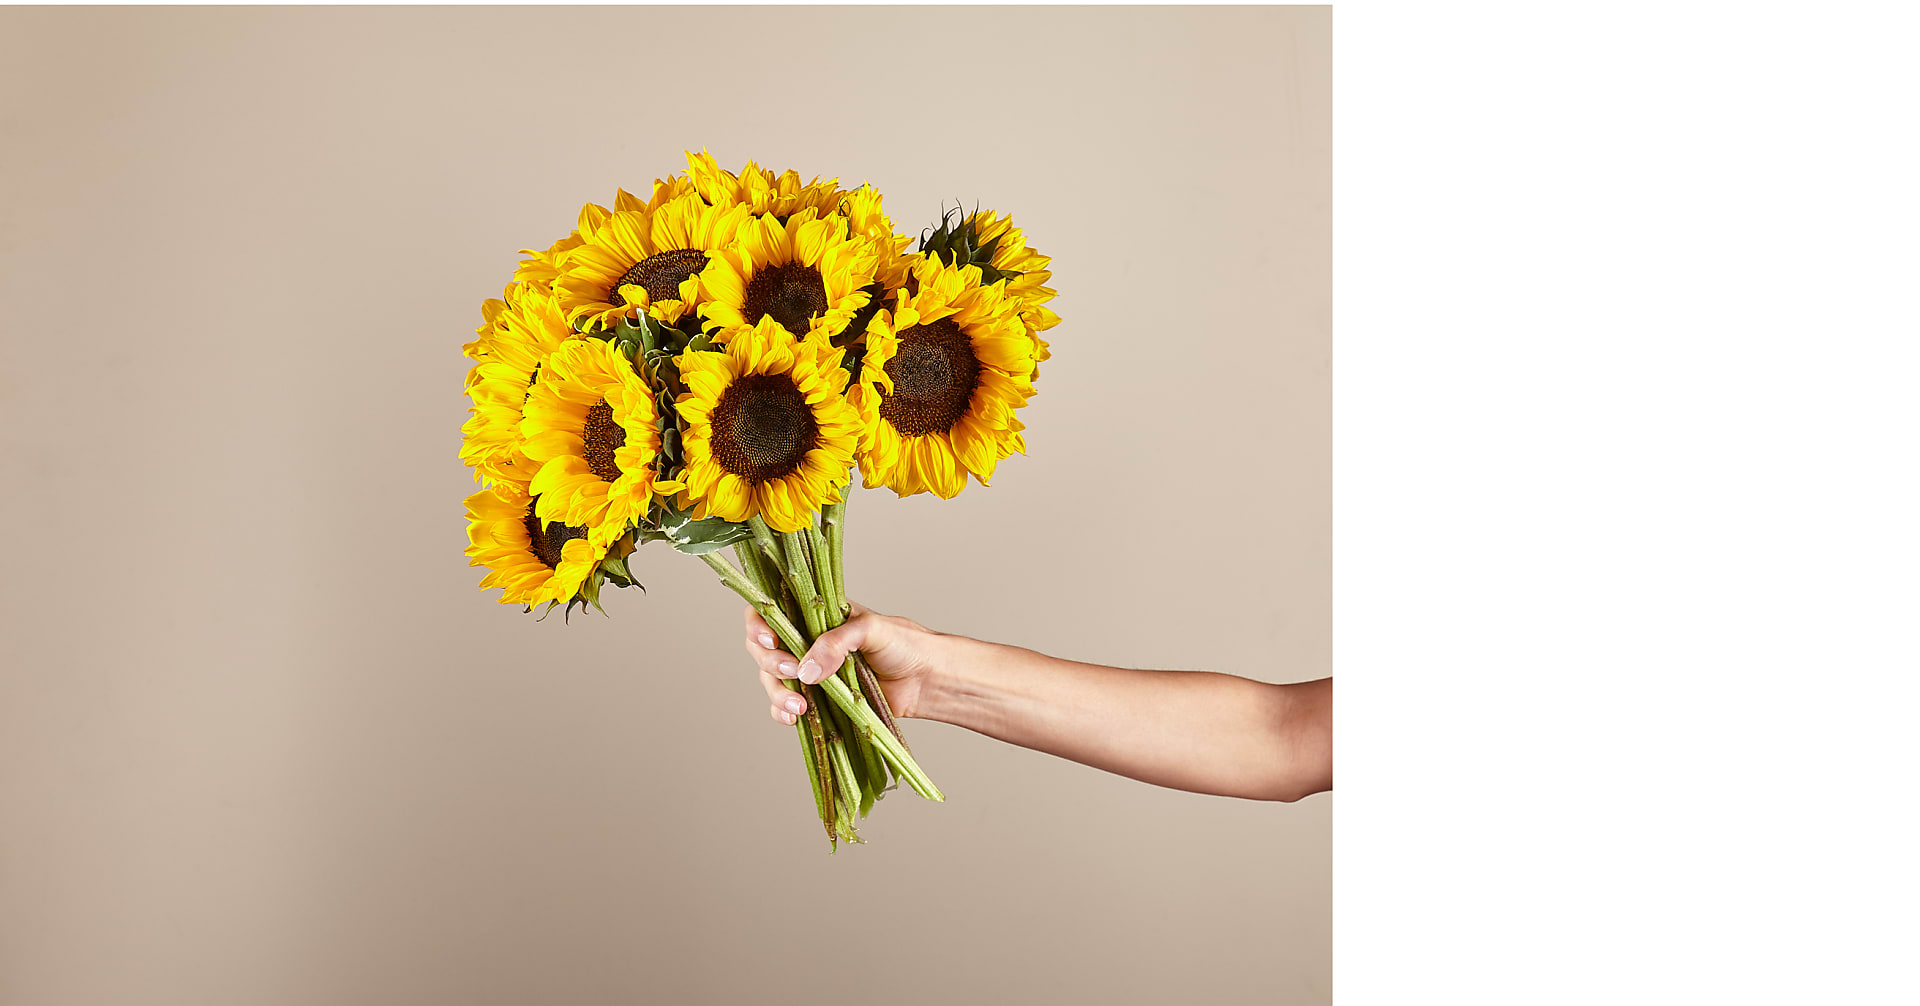 Honey Bee Sunflower Bouquet - Image 2 Of 5